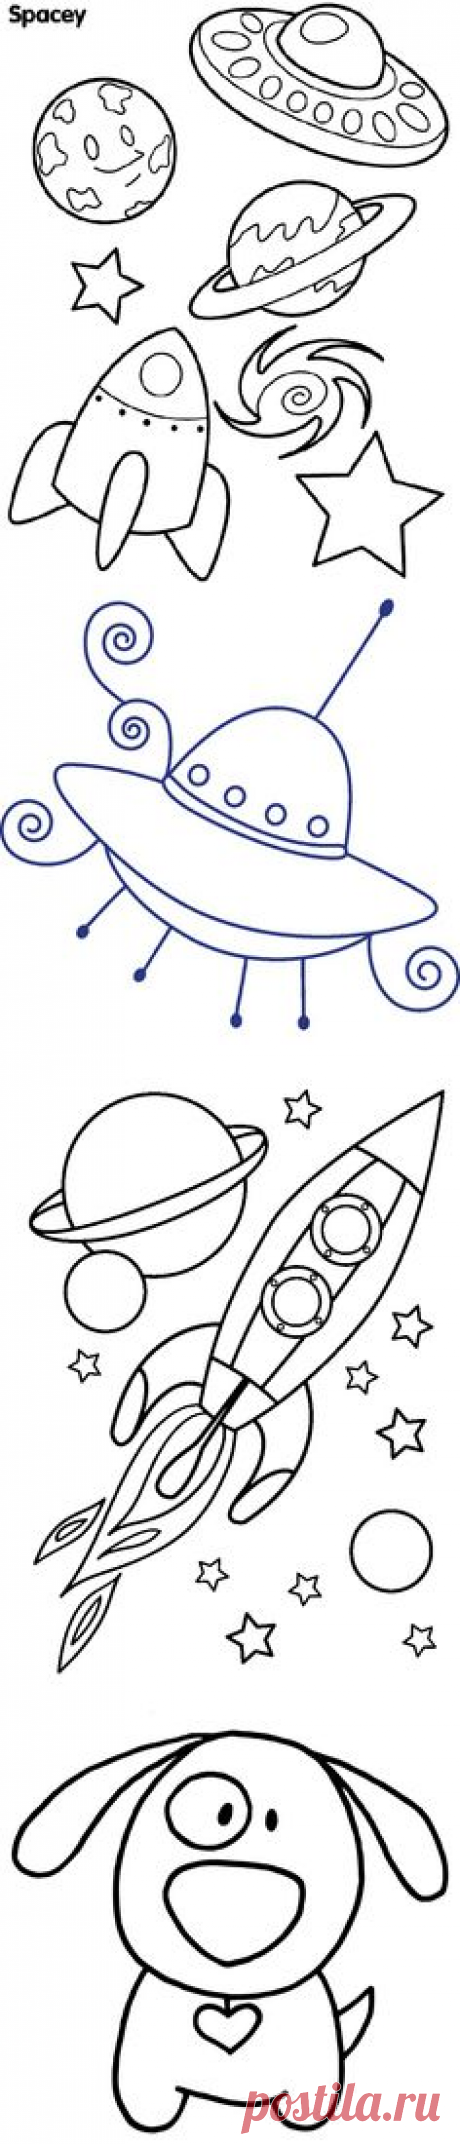 (161) Digital Stamp - Space Rocket Spaceship - Printable Line Art for Card & Craft Supply. Digital image. Clipart Commercial Use